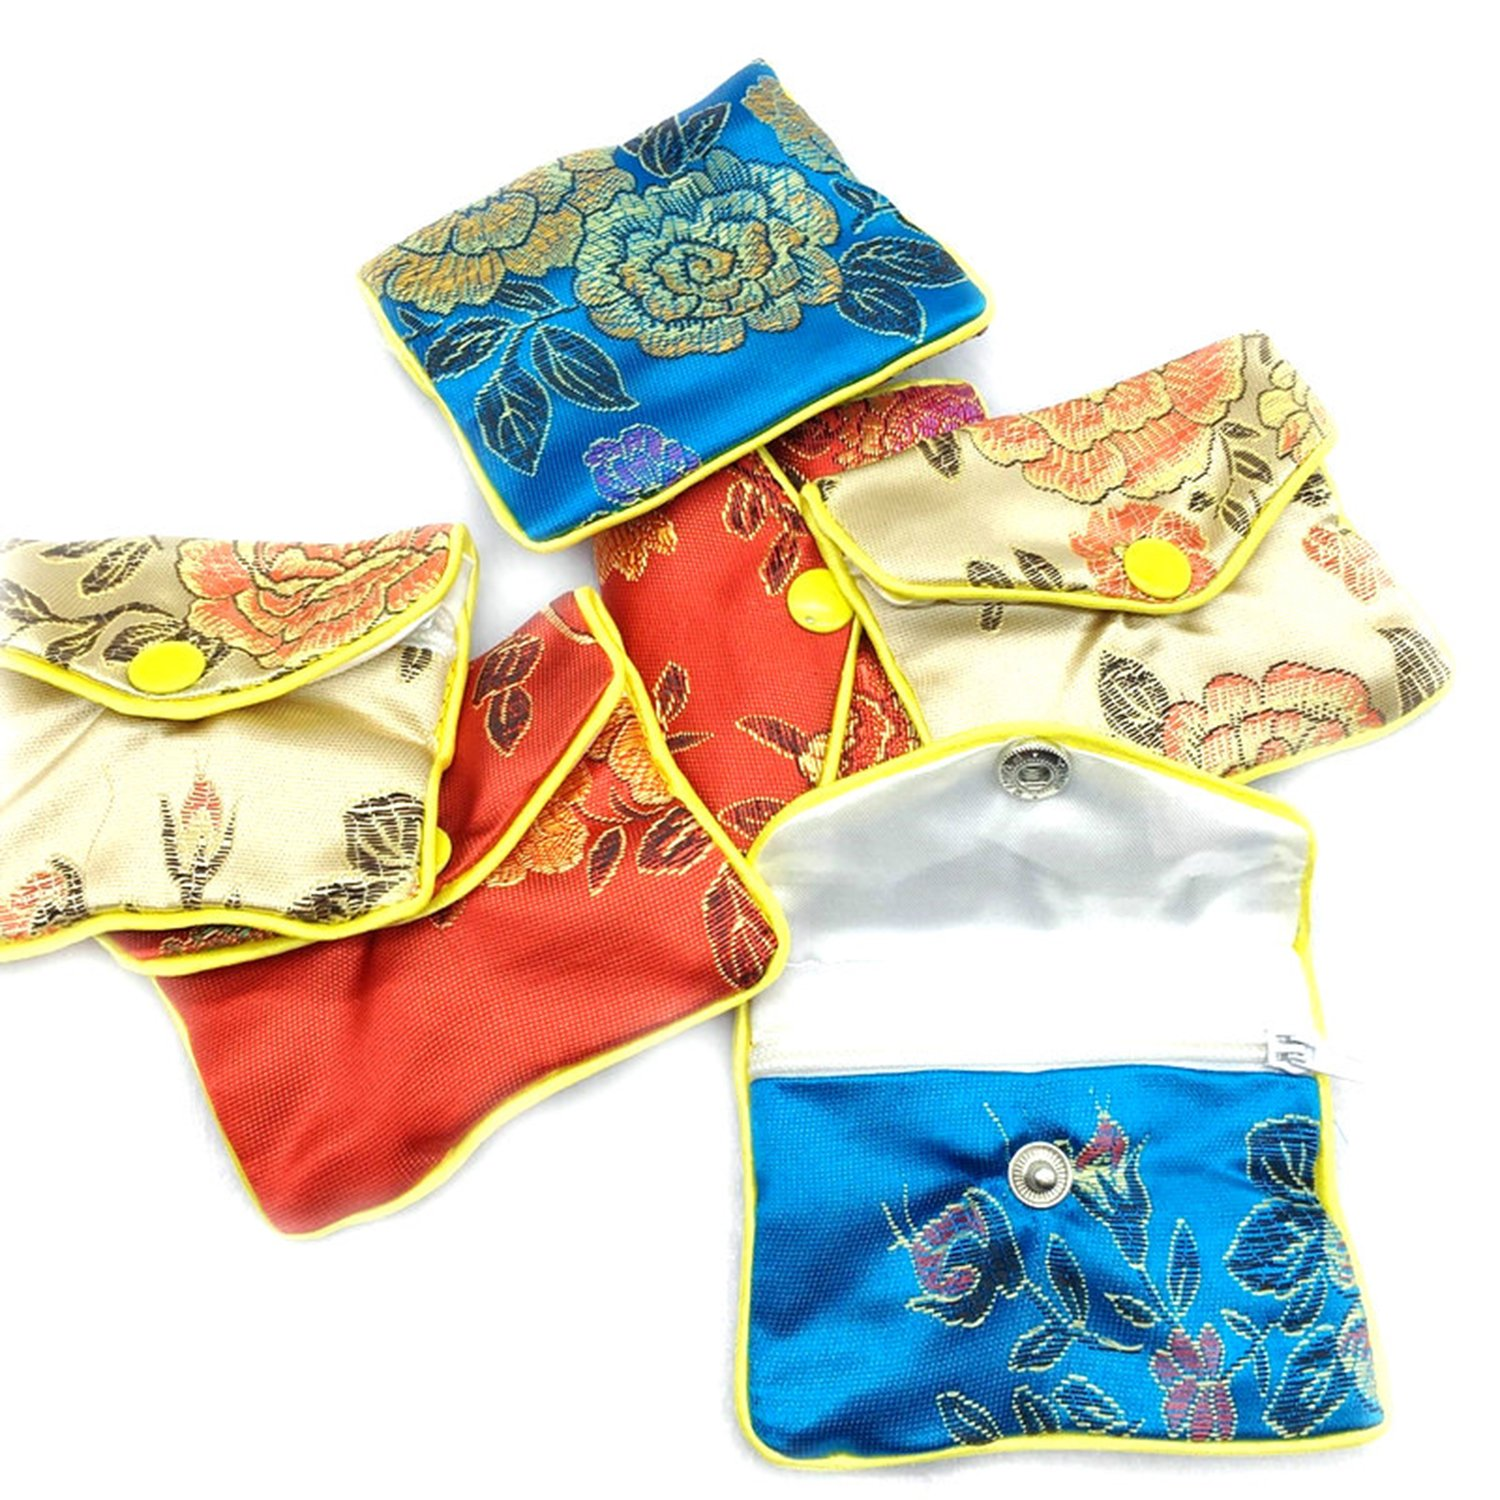 Yamed 12Pcs Chinese Silk Pouch Wallet Coin Purse Random Color Bag Jewelry Gift